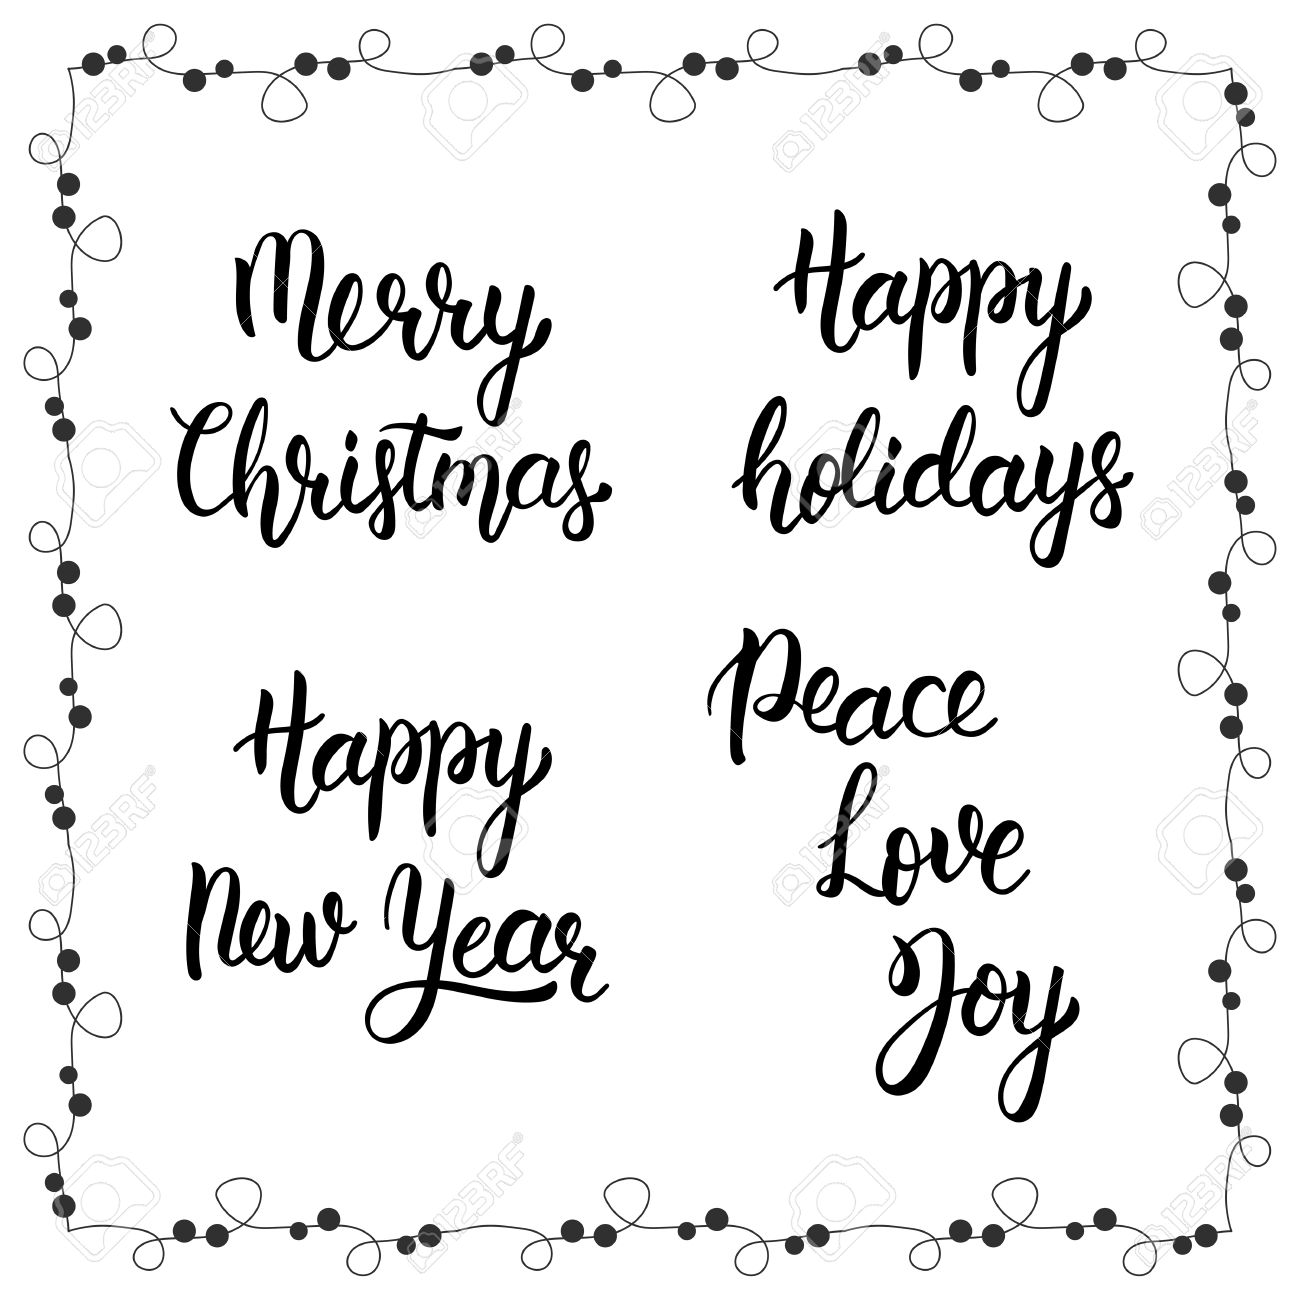 Quote About Peace And Love Christmas Calligraphy Phrasesmerry Christmashappy New Year